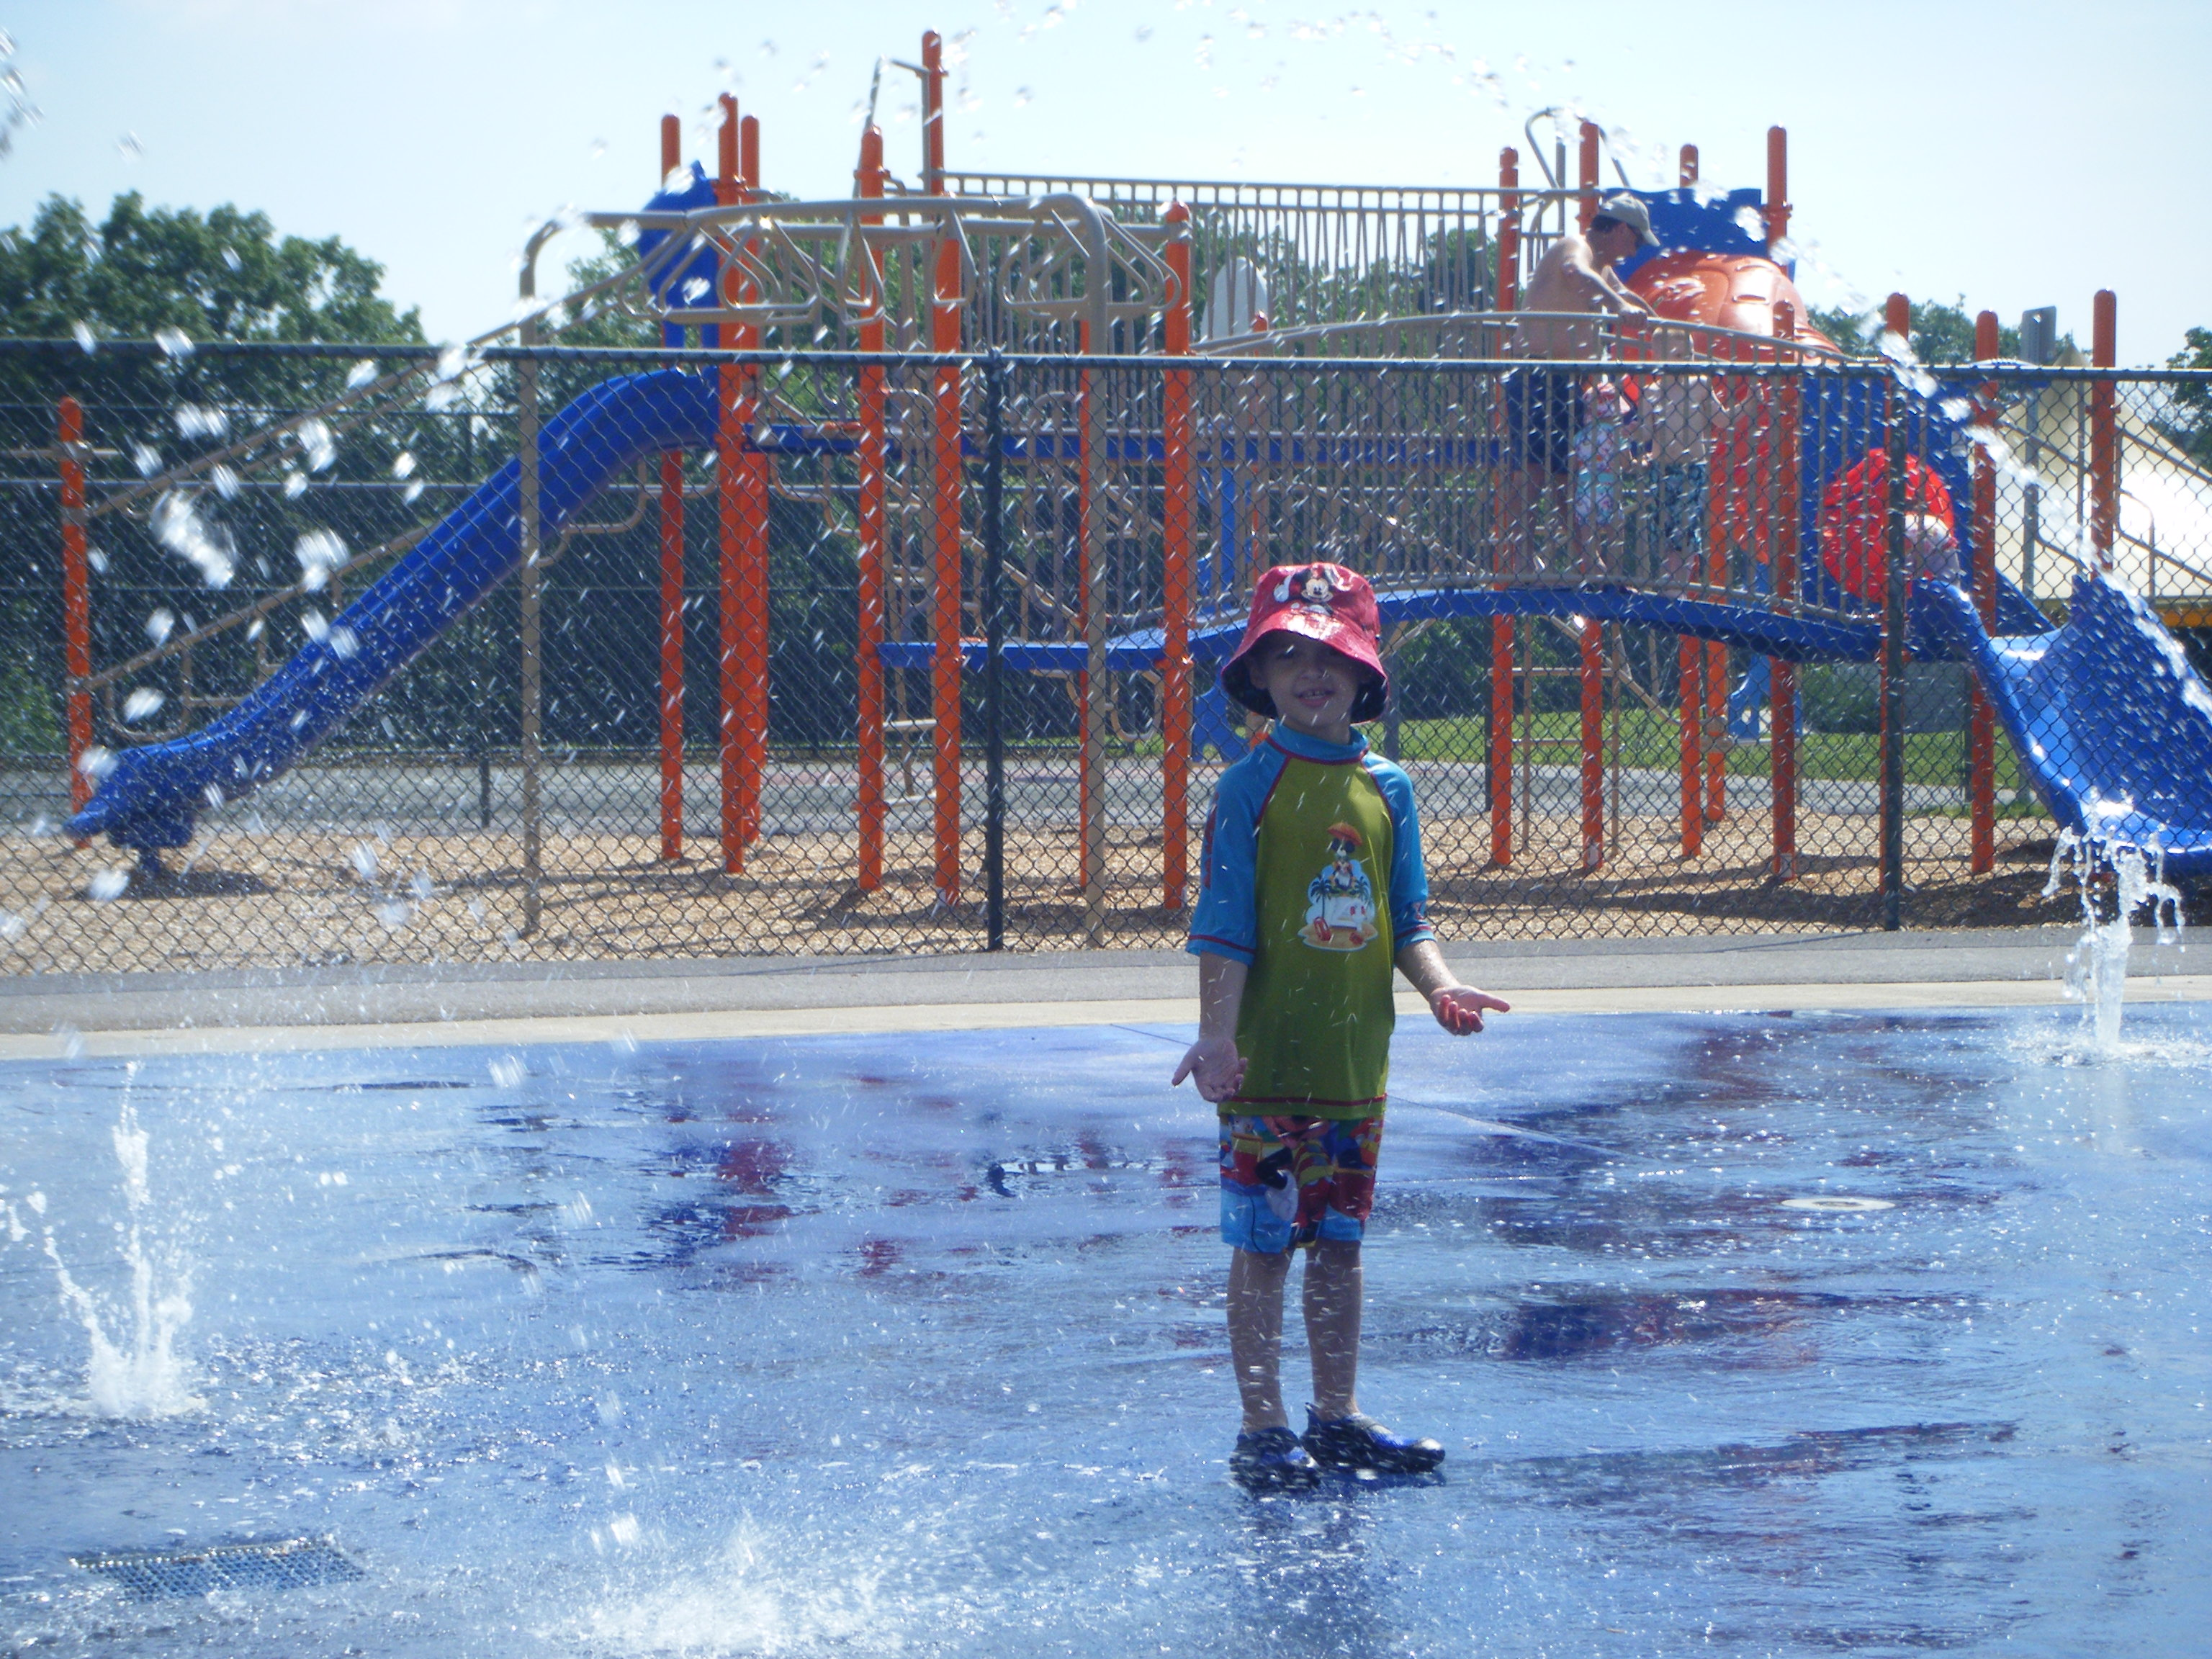 Middlesex Township Splash Pad